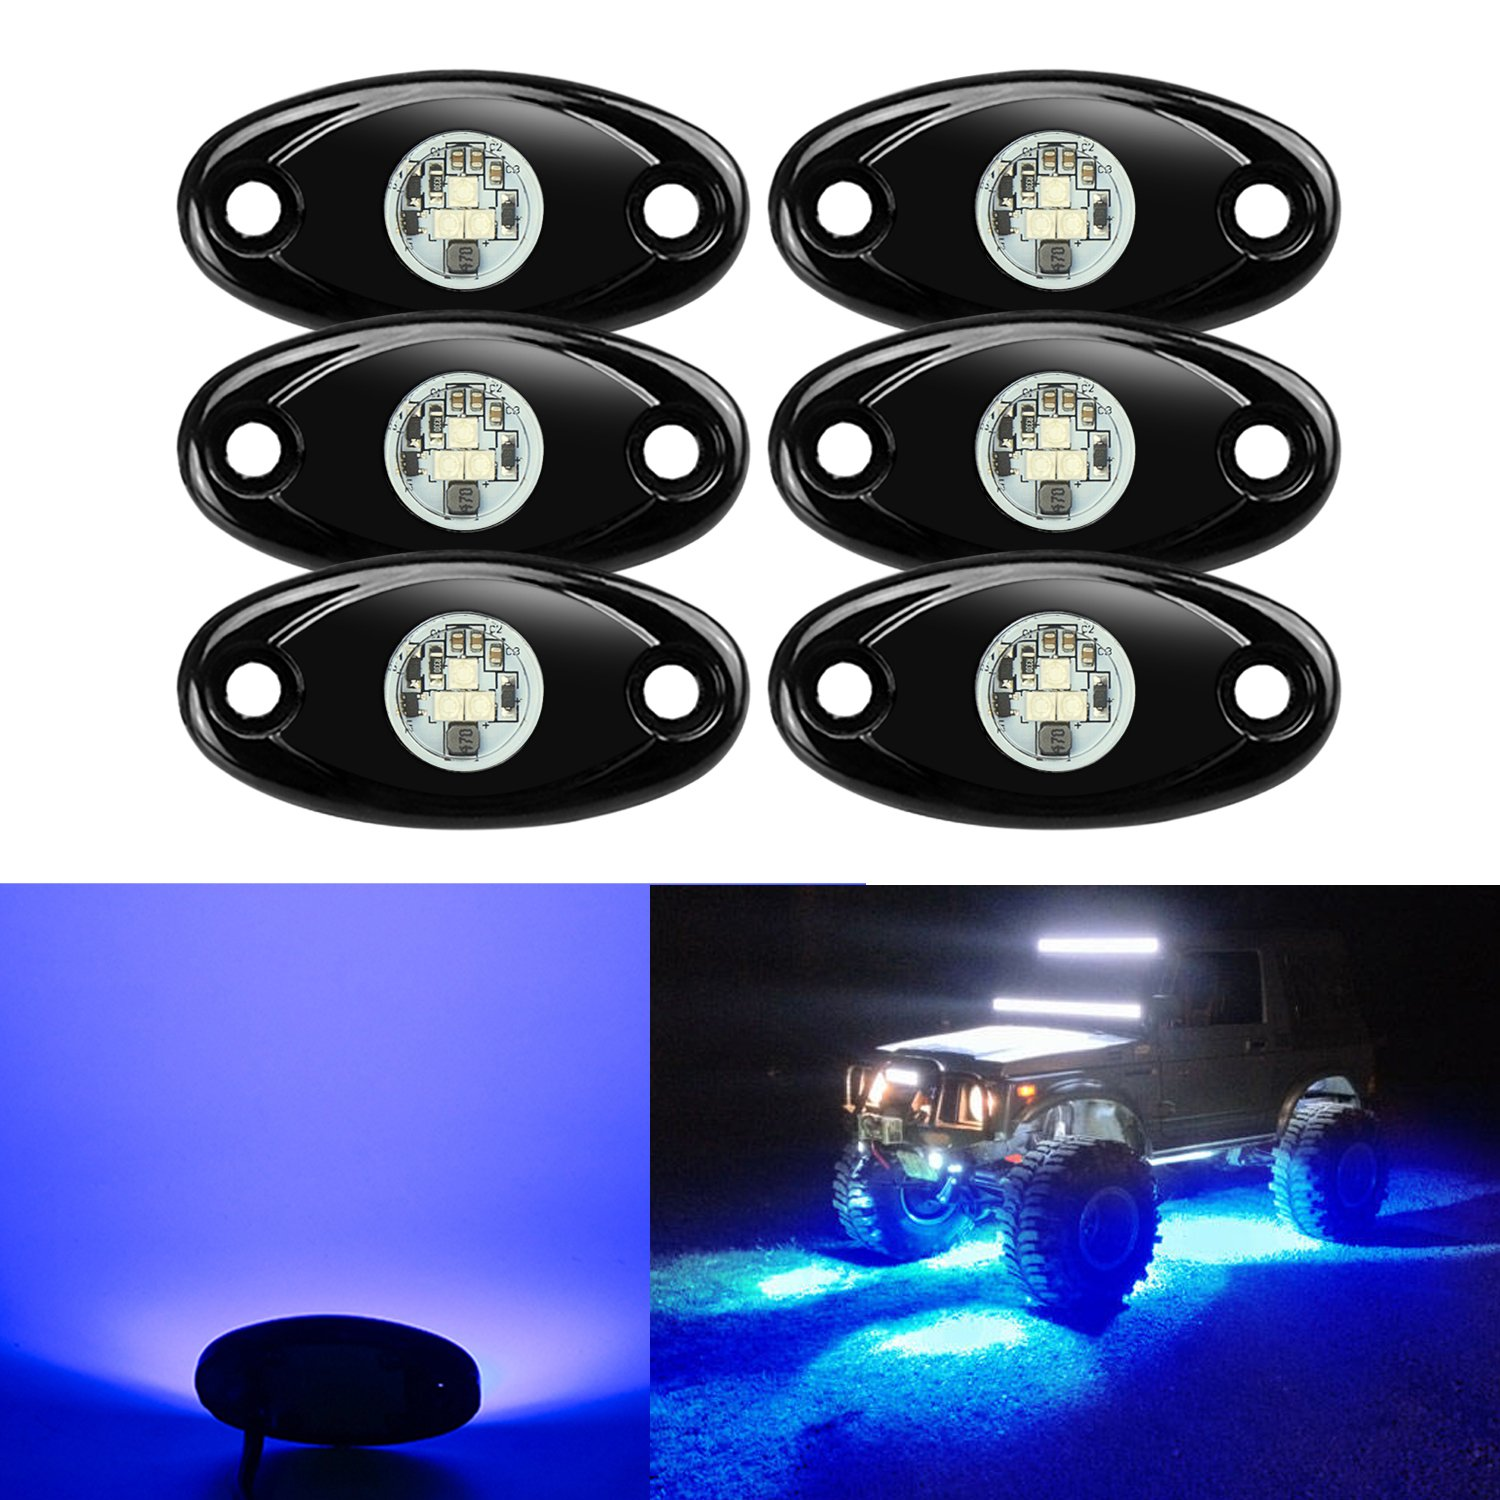 6 Pods LED Rock Lights Kit, Ampper Waterproof Underglow LED Neon Trail Rig Lights for Car Truck ATV UTV Baja Raptor Offroad Boat Trail Rig Lamp Underbody Glow (Blue)